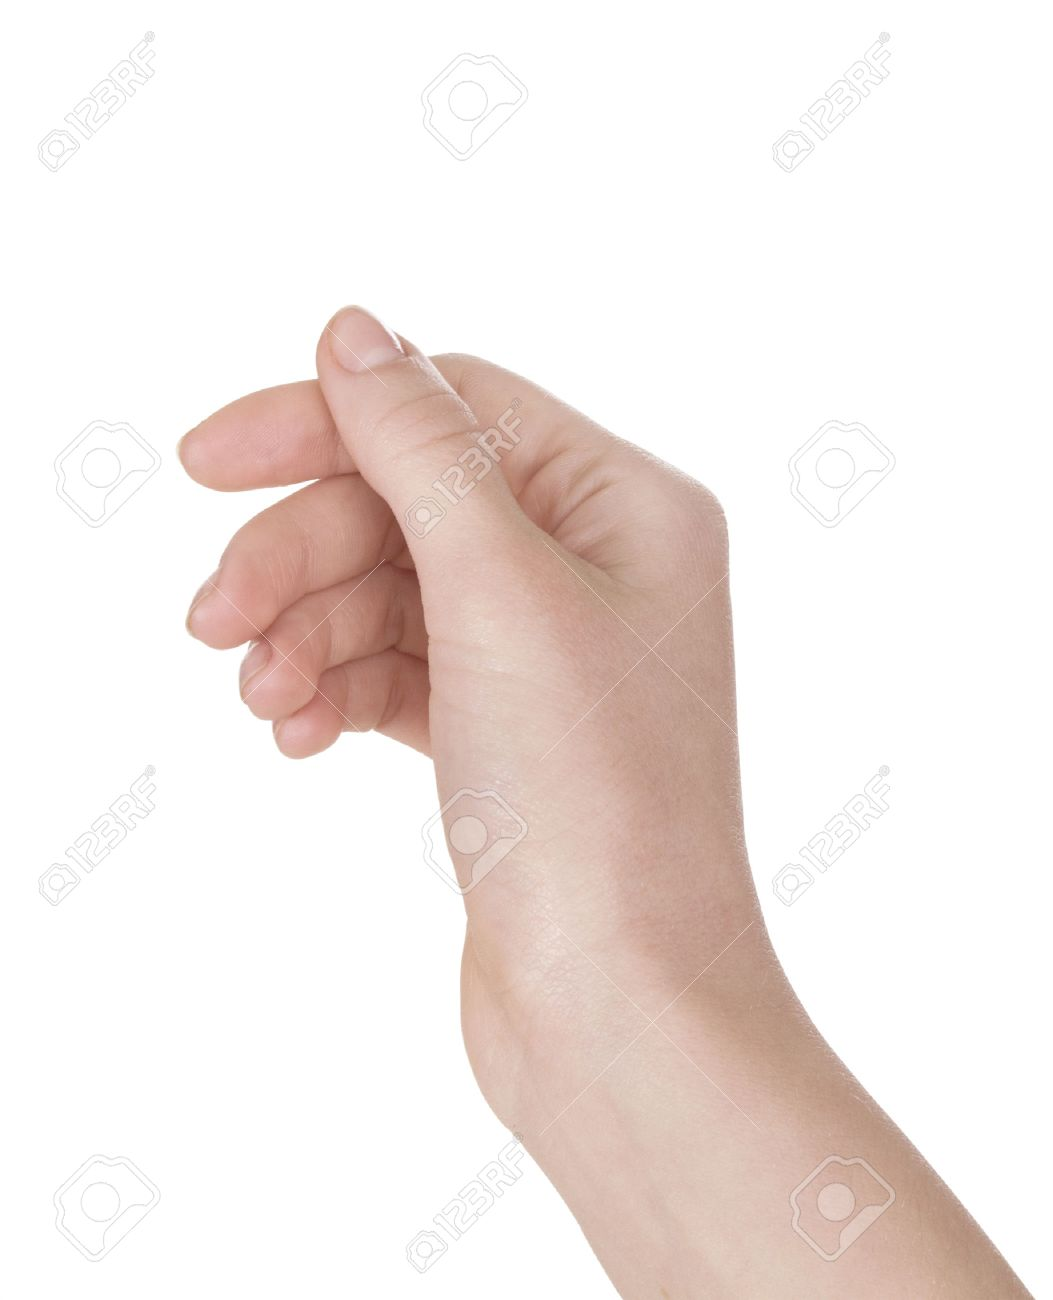 Image result for hand holding something